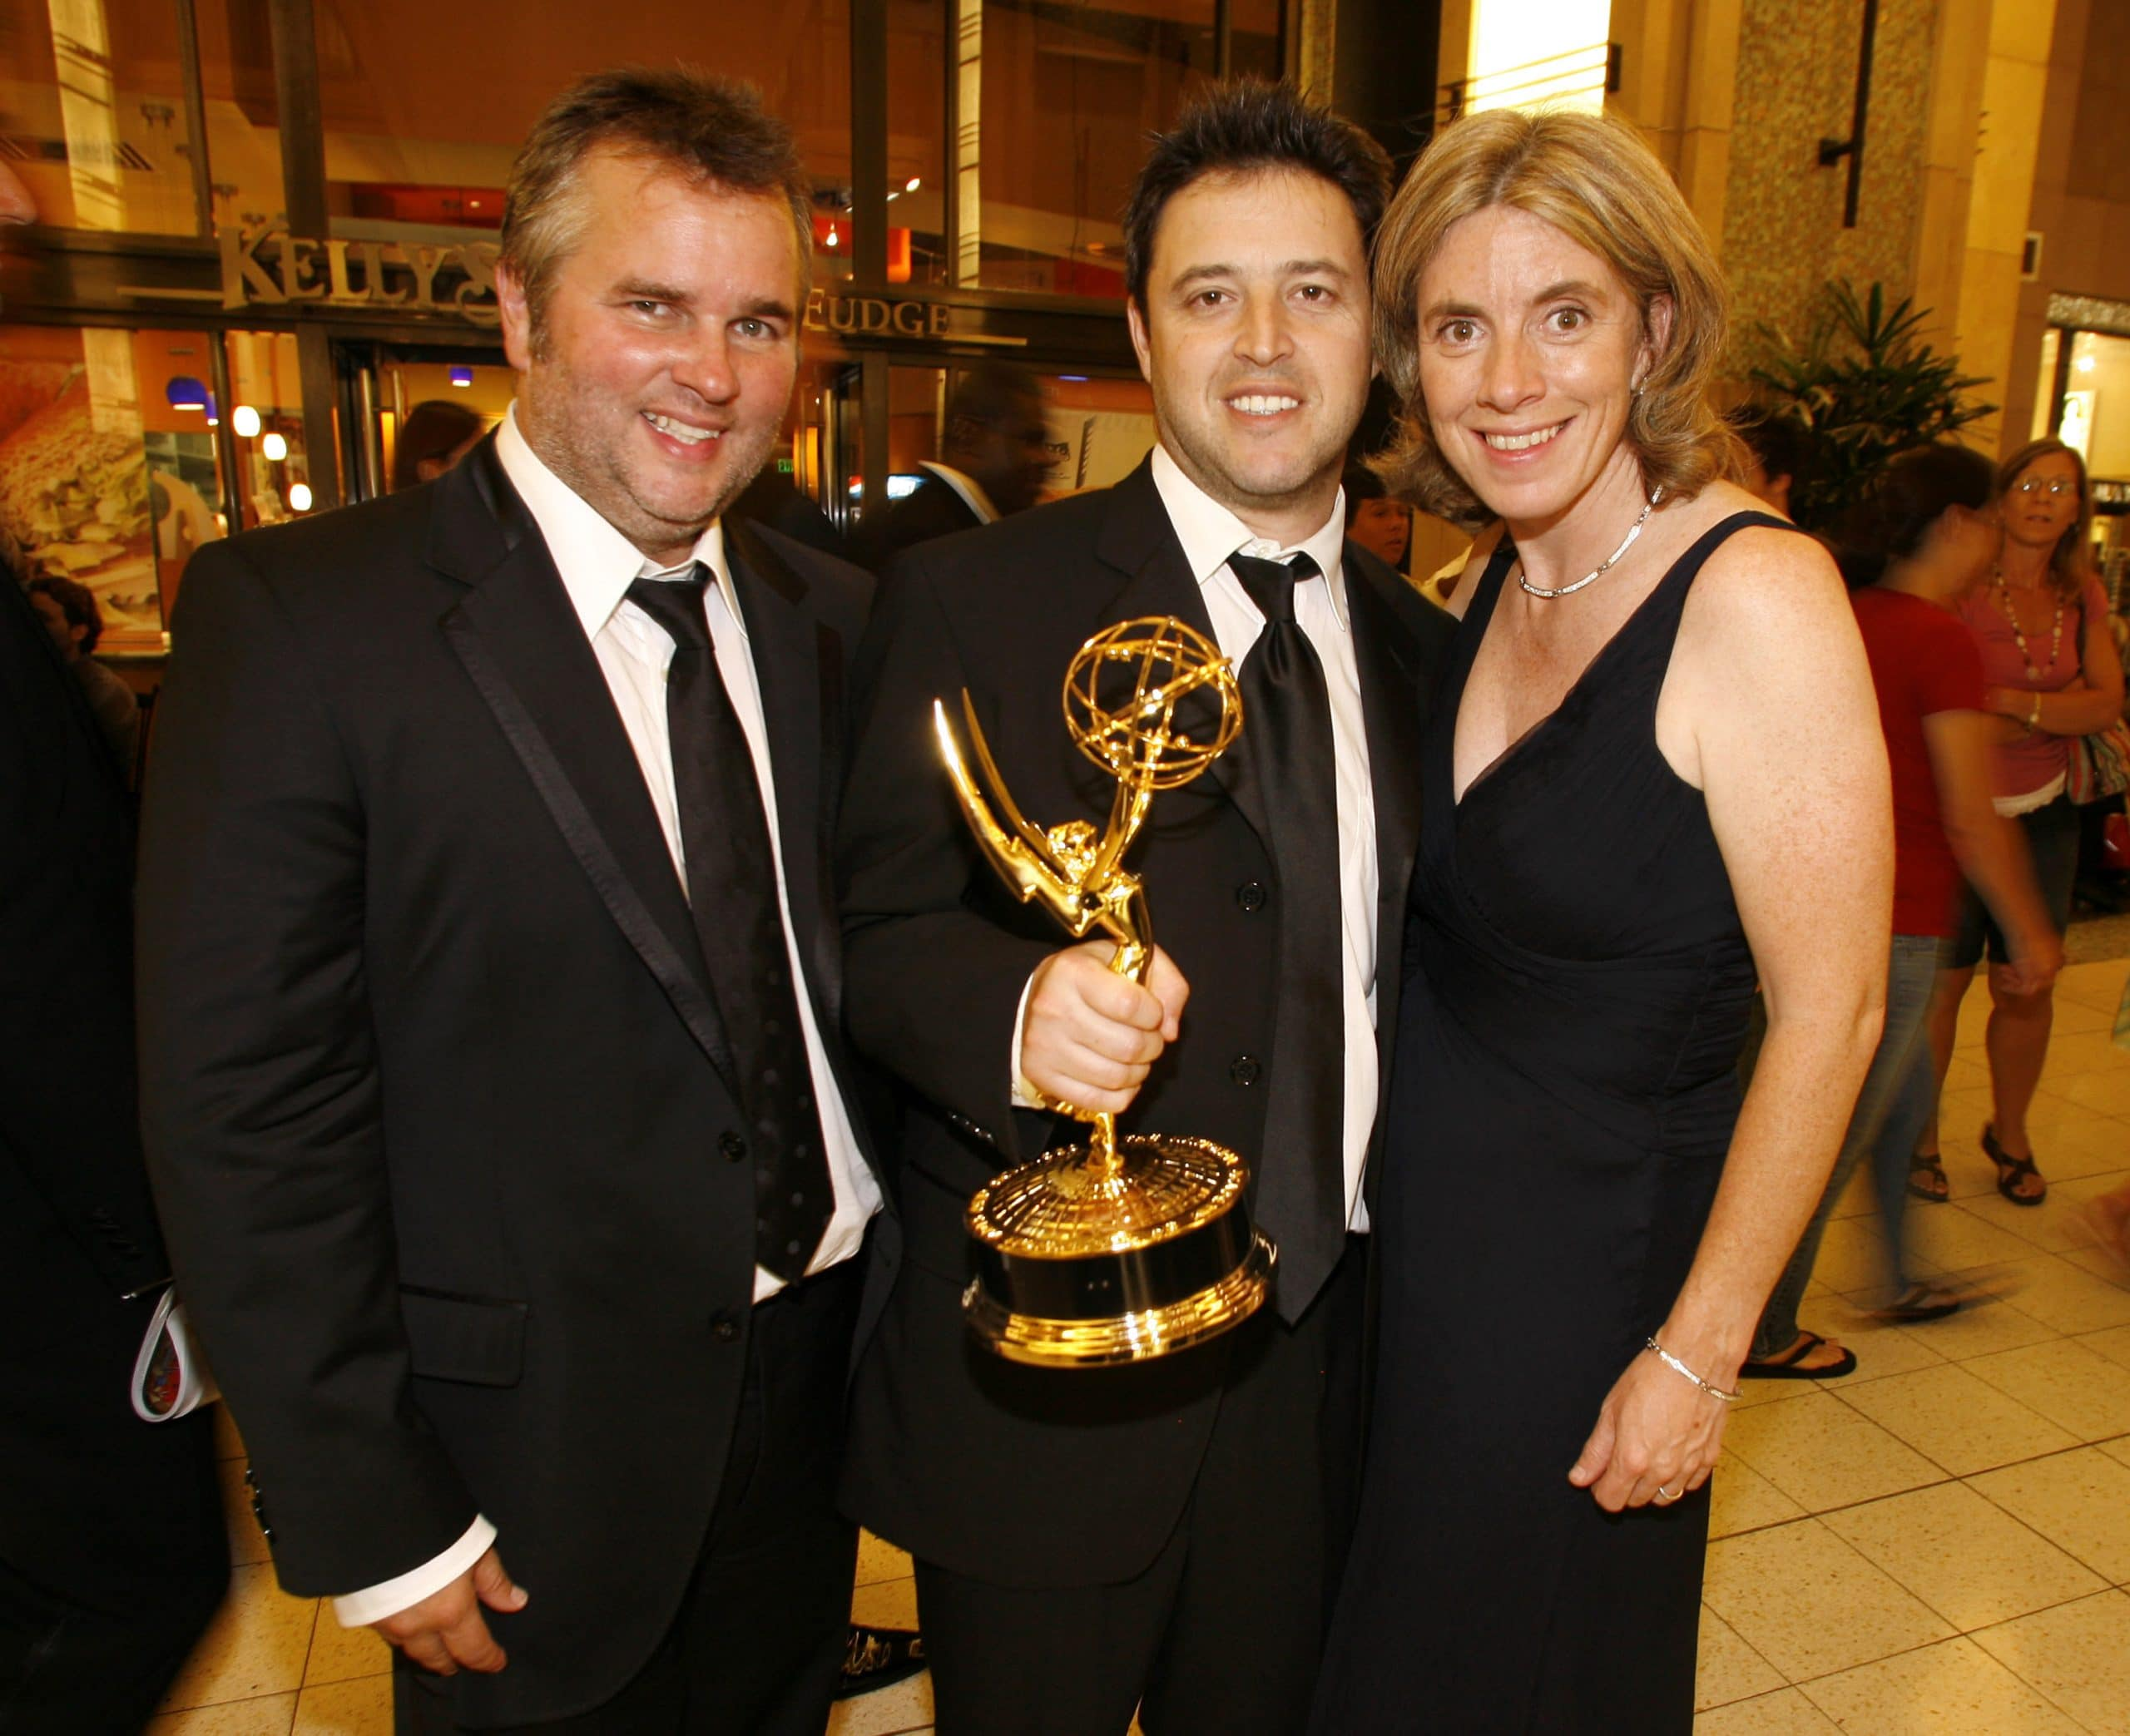 the ellen degeneres show producers Ed Glavin, Andy Lassner and Mary Connelly